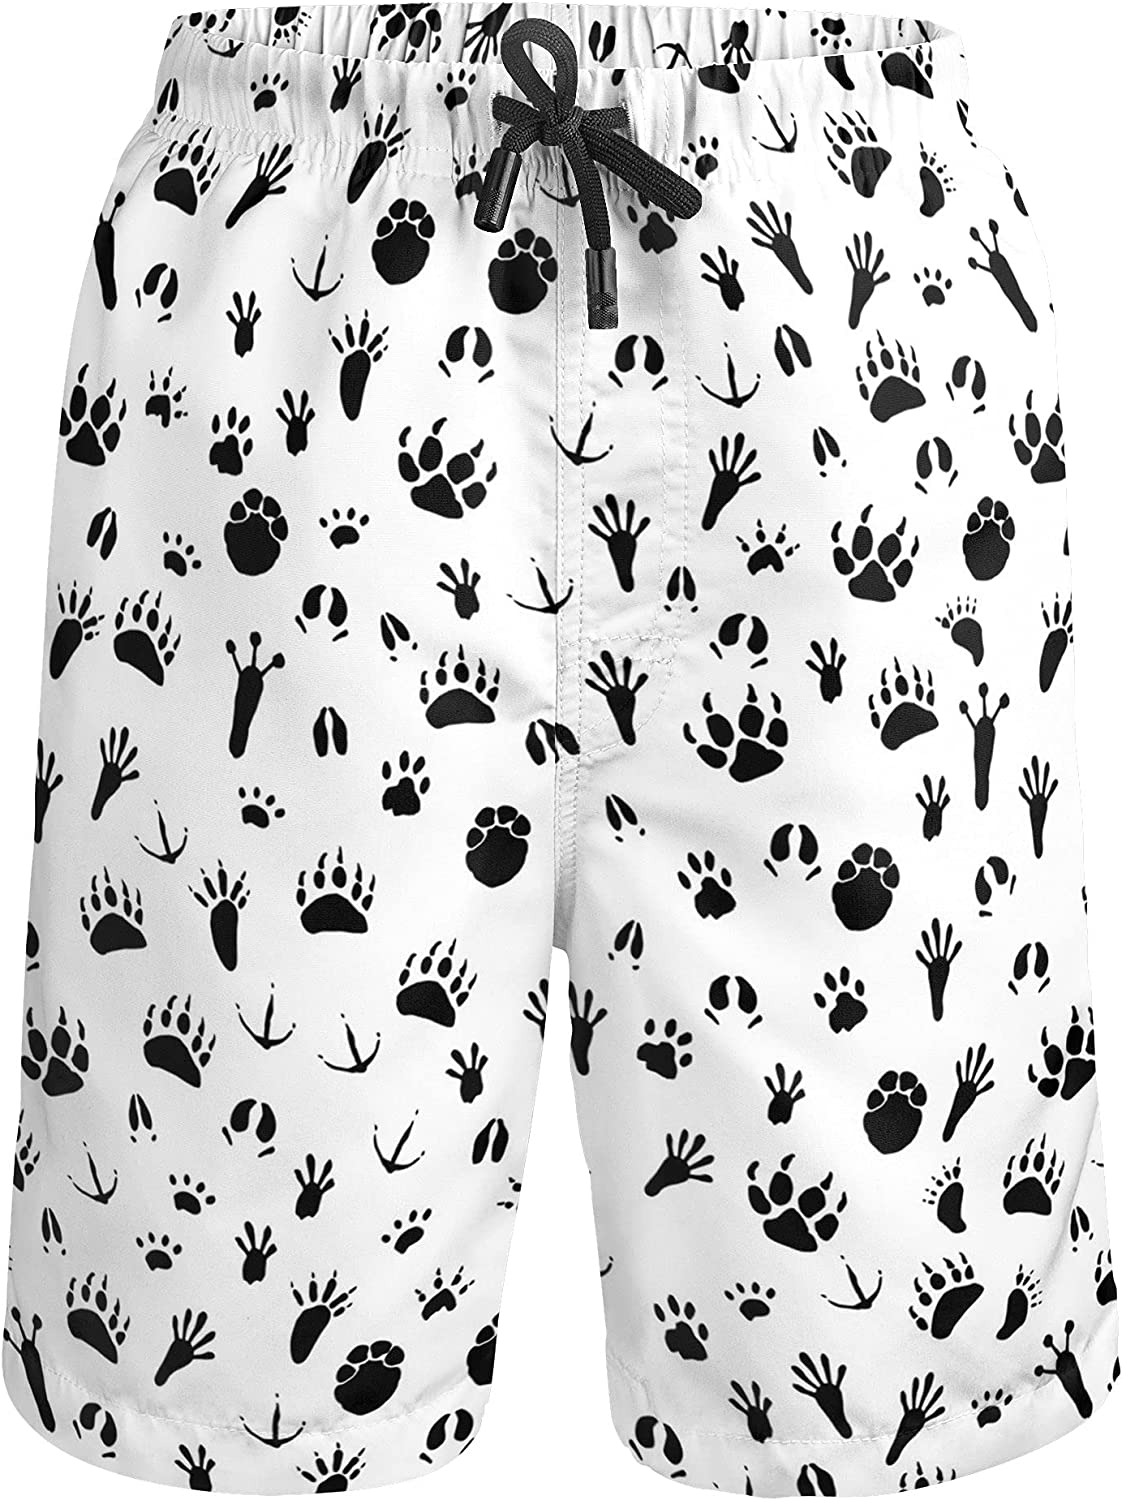 Boys Swim Trunks Quick Dry Beach Surf Boards Shorts Dog Puppy Paw Print Swimsuits with Pockets 4T-16T